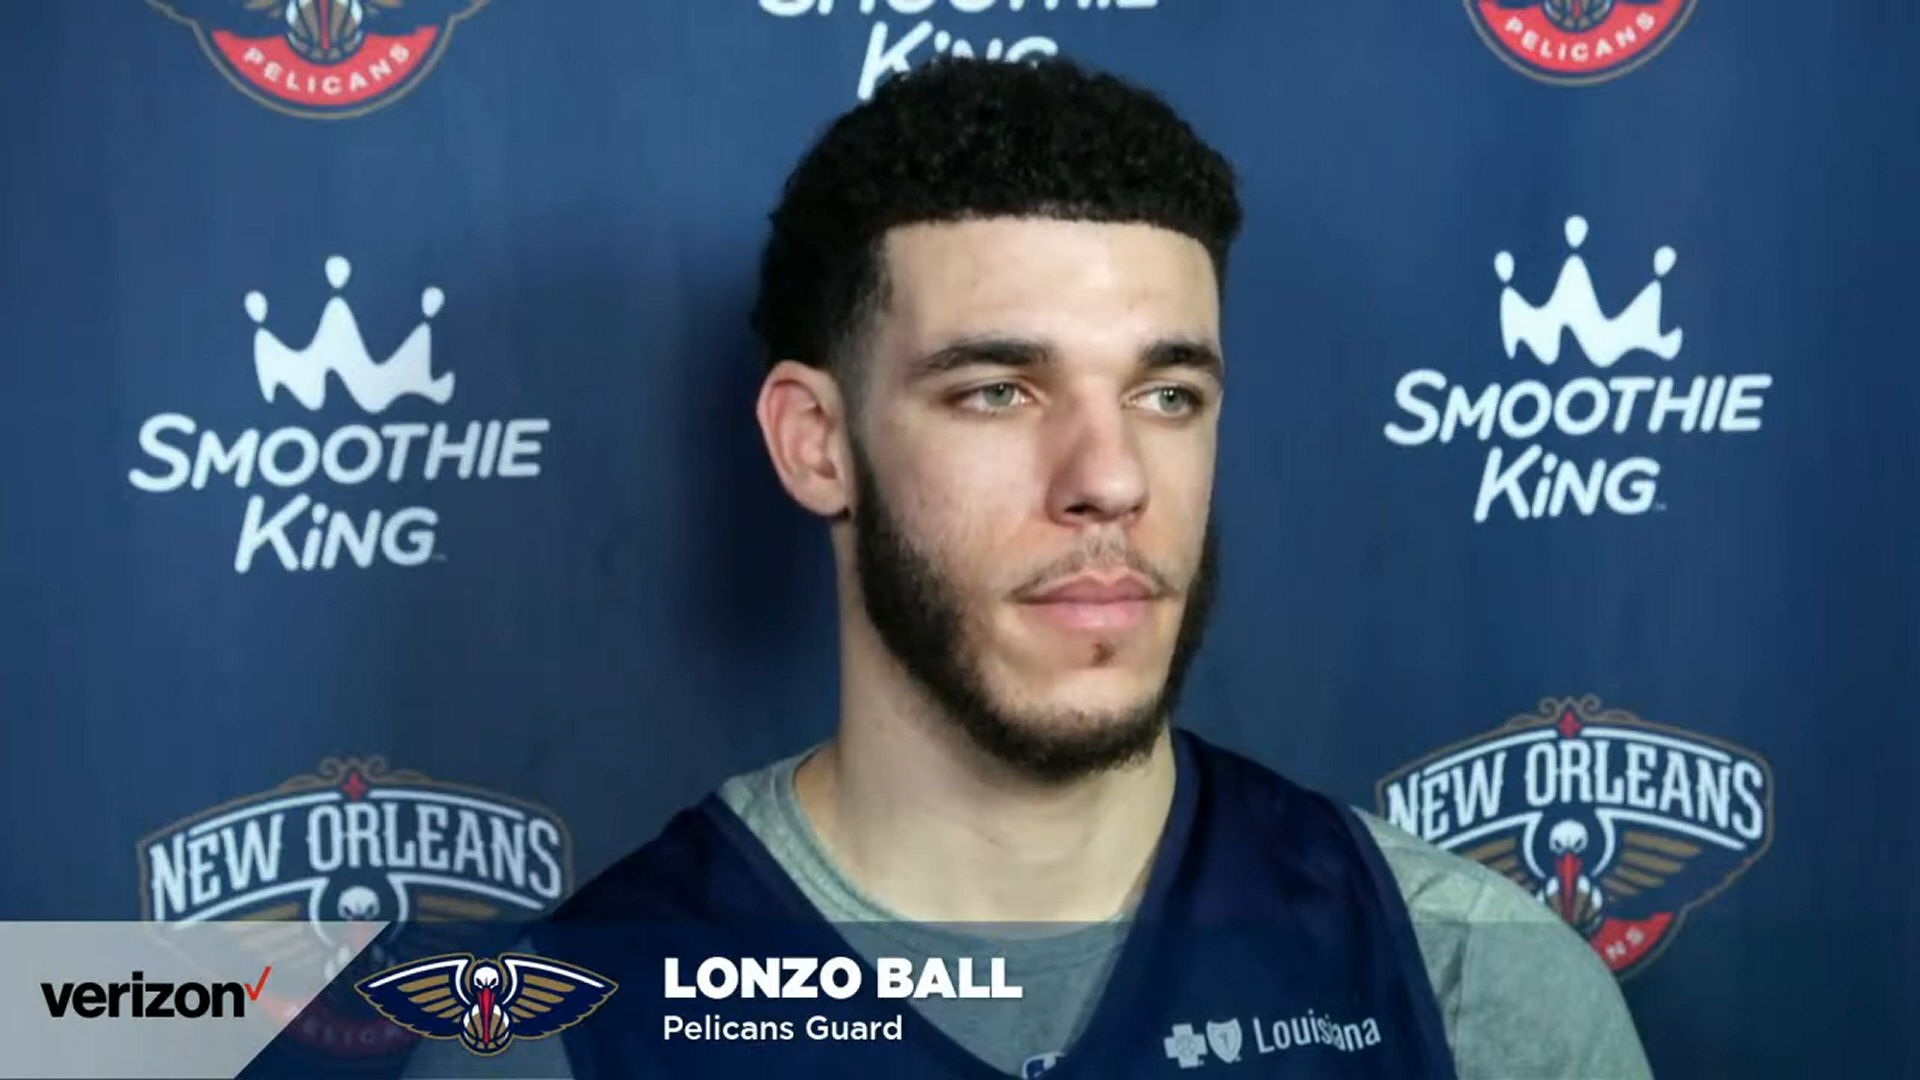 Lonzo Ball talks playing fast and consistent | Pelicans Post-Practice 2/23/21